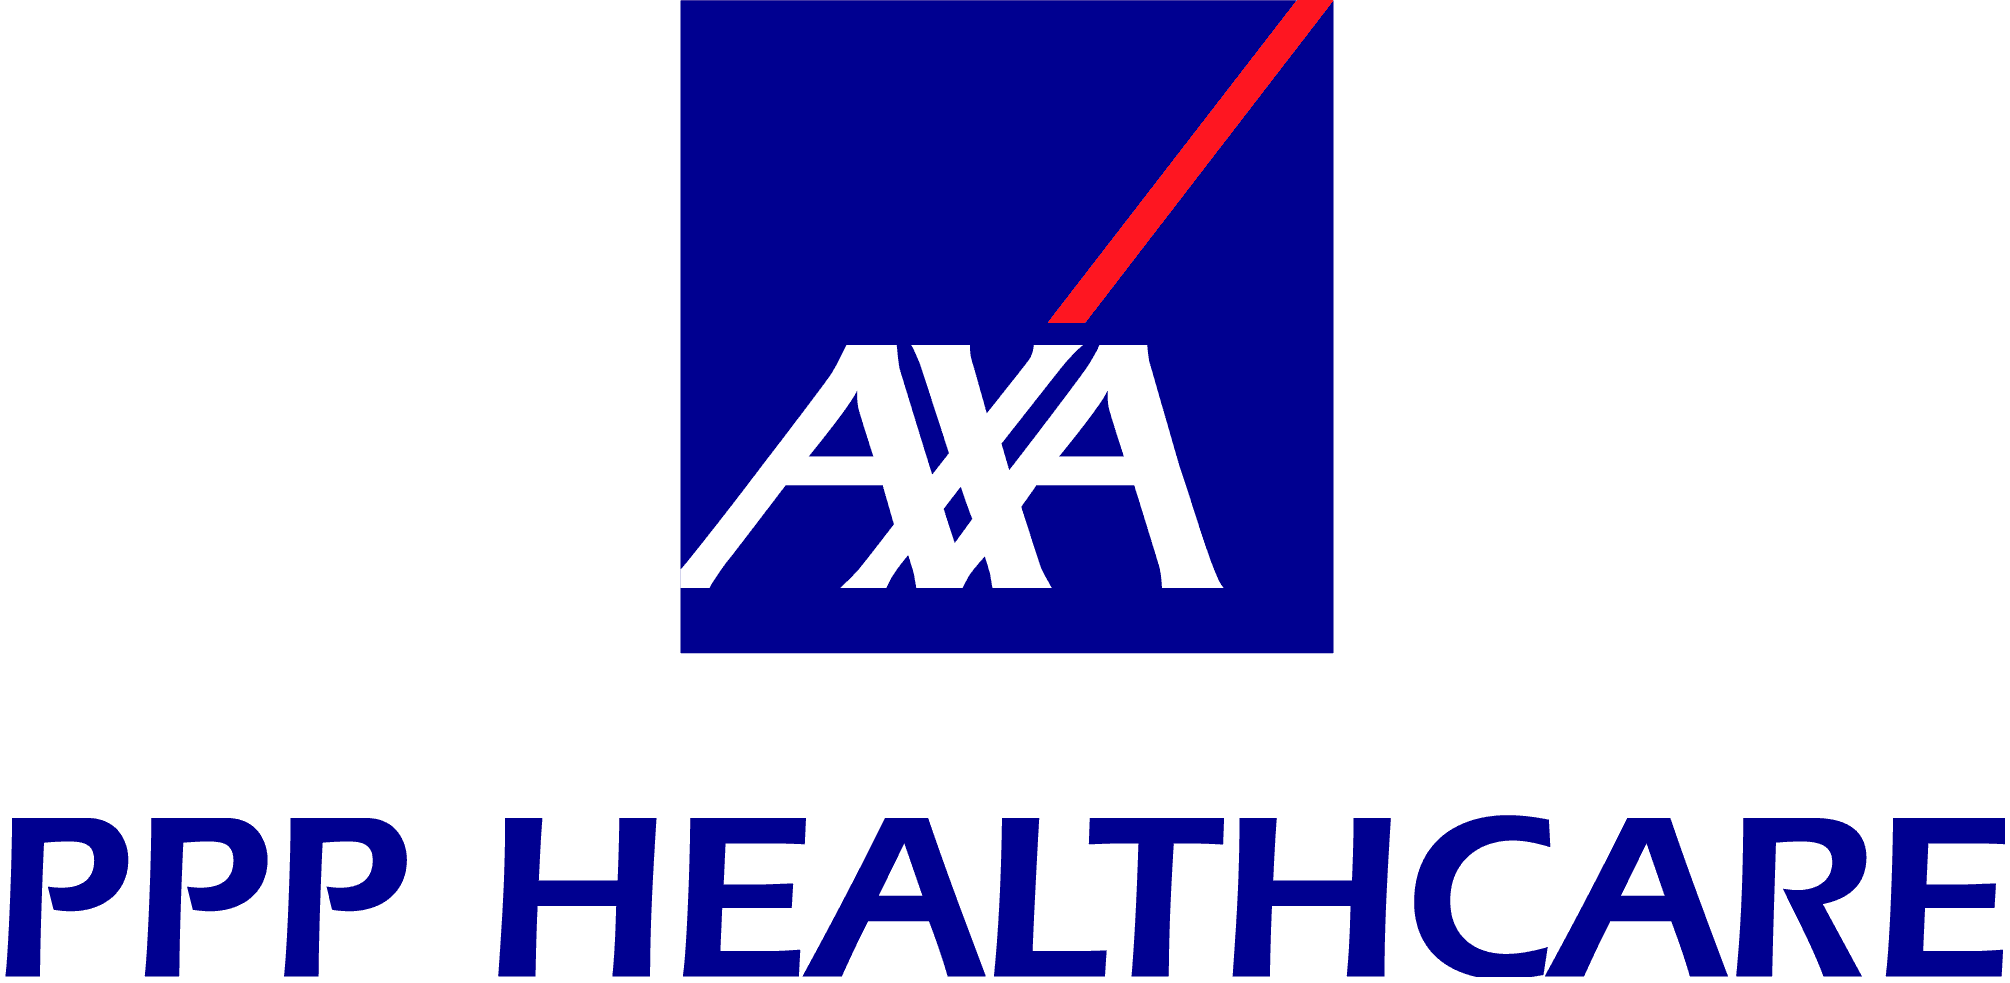 AXA_PPP_healthcare_centered_solid_png.png